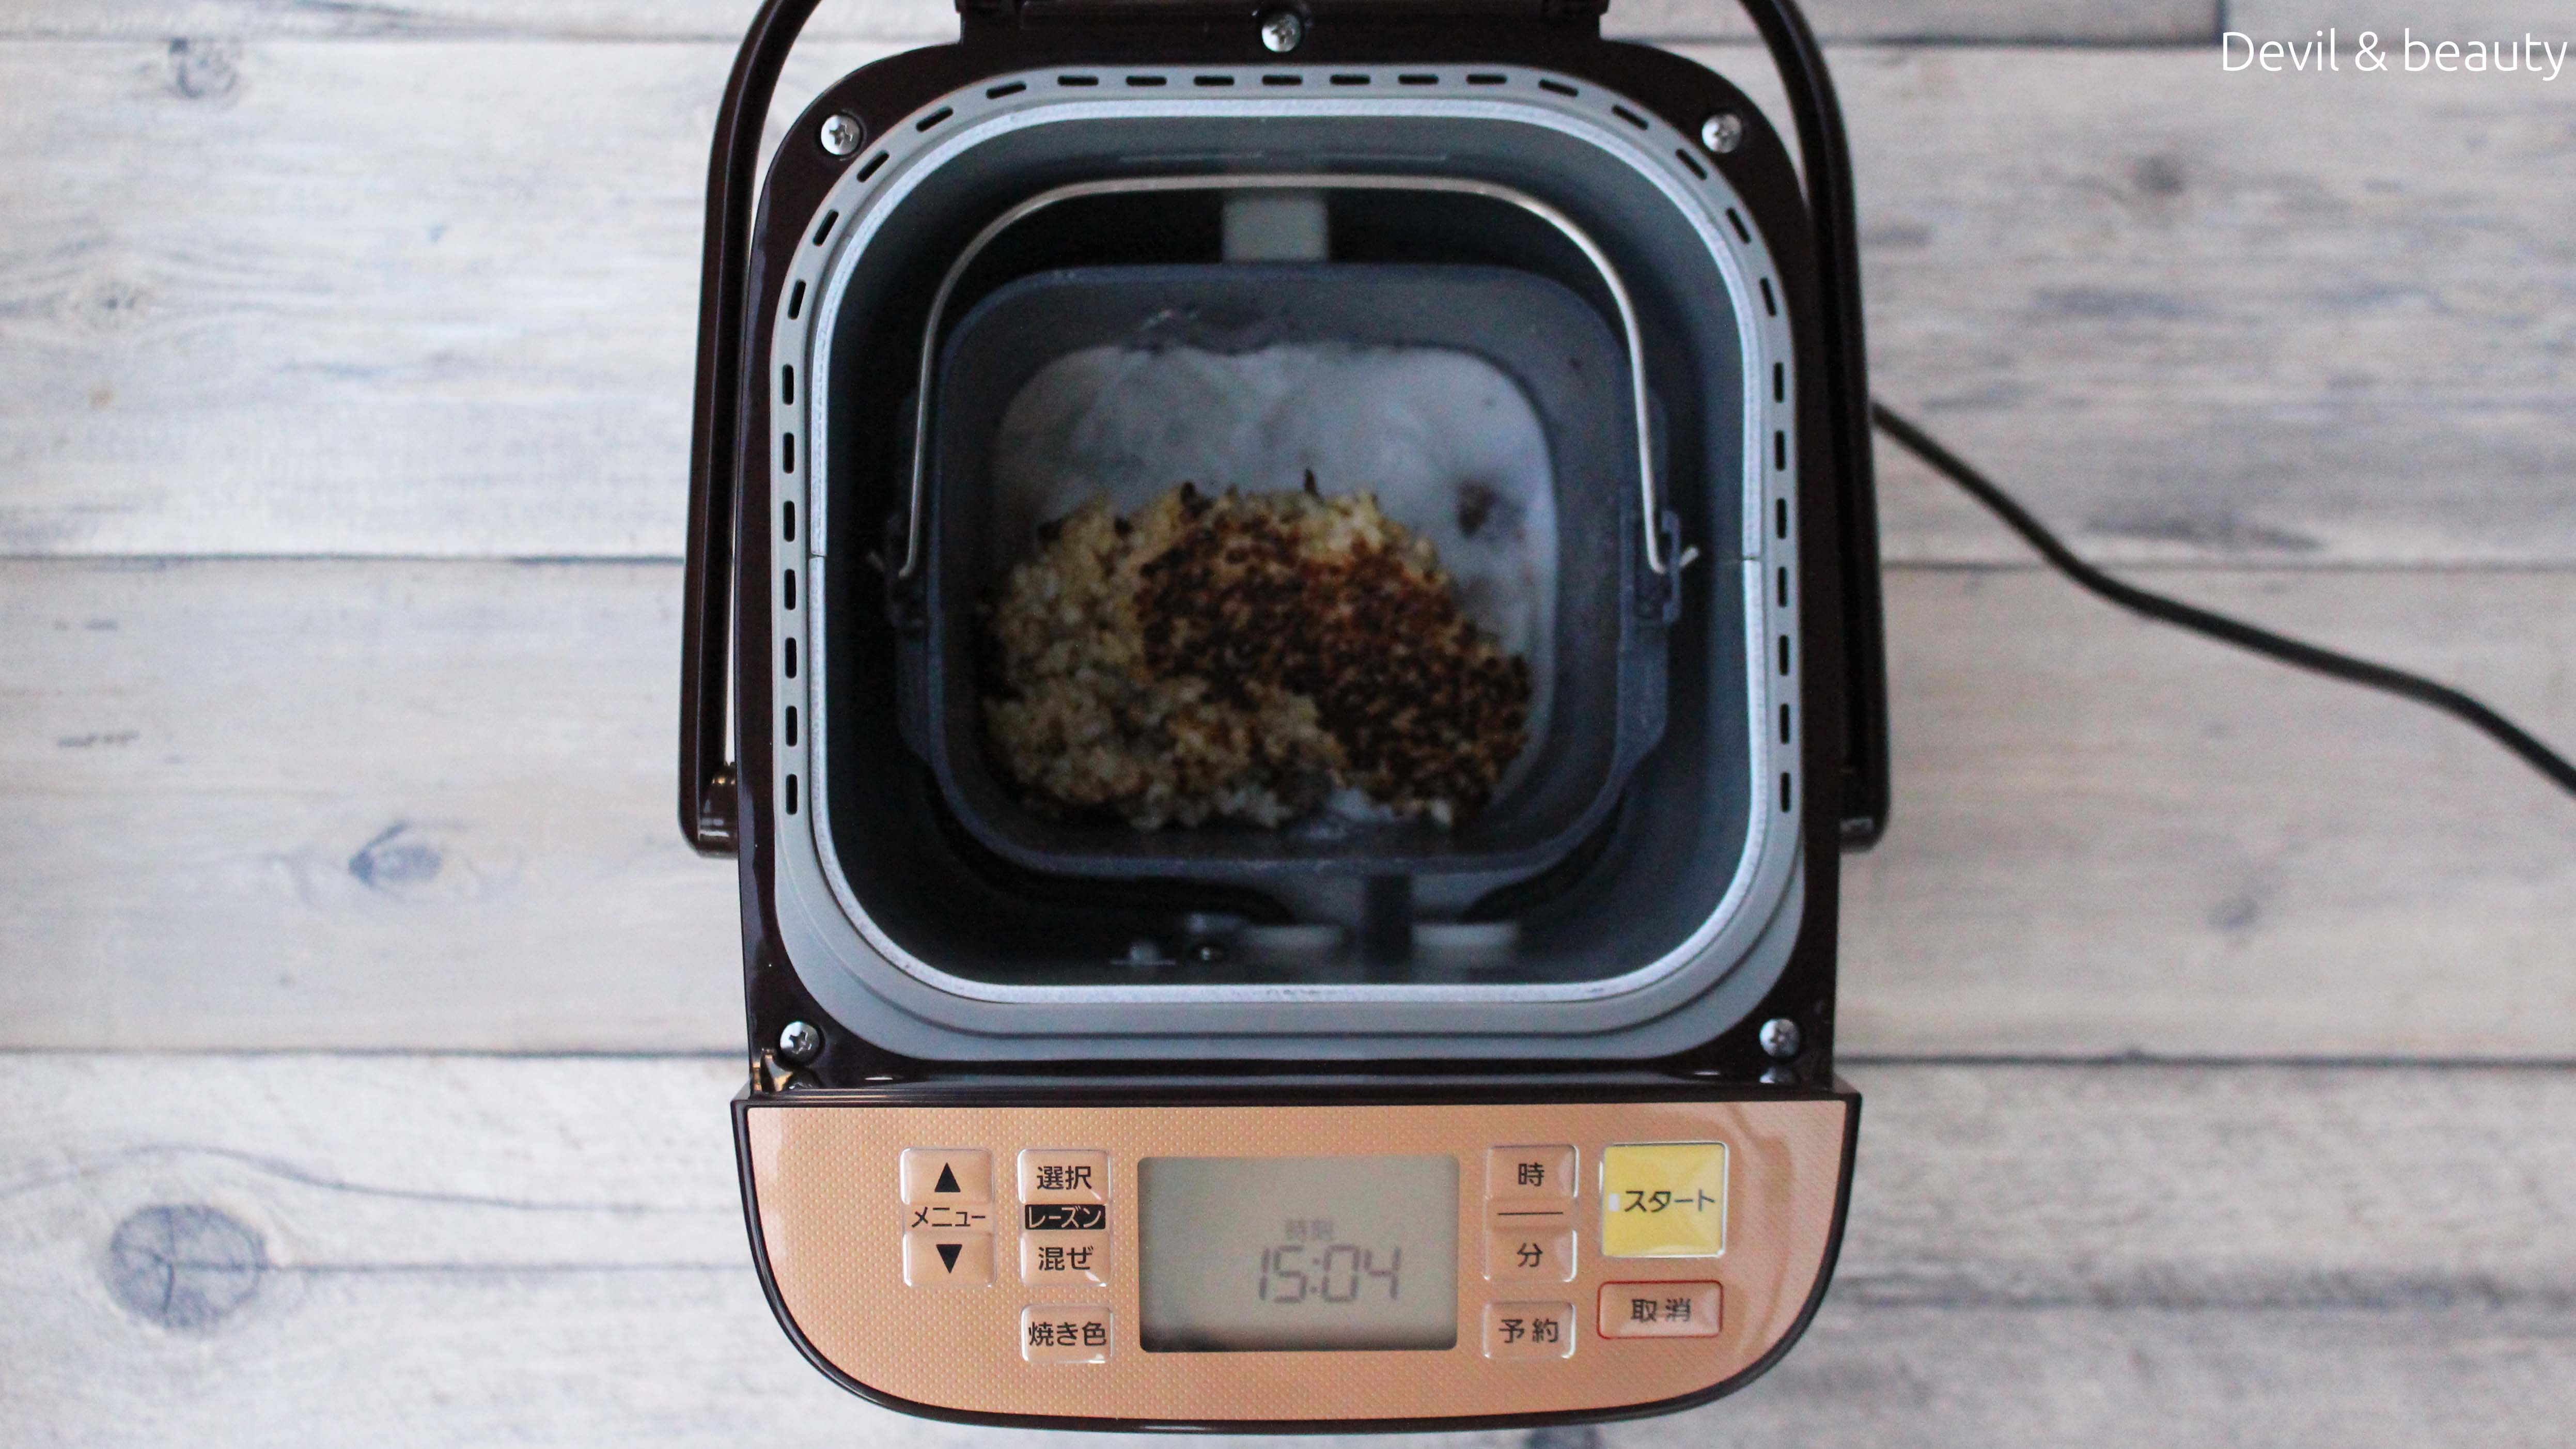 panasonic-sd-bmt1001-rice-bread5 - image